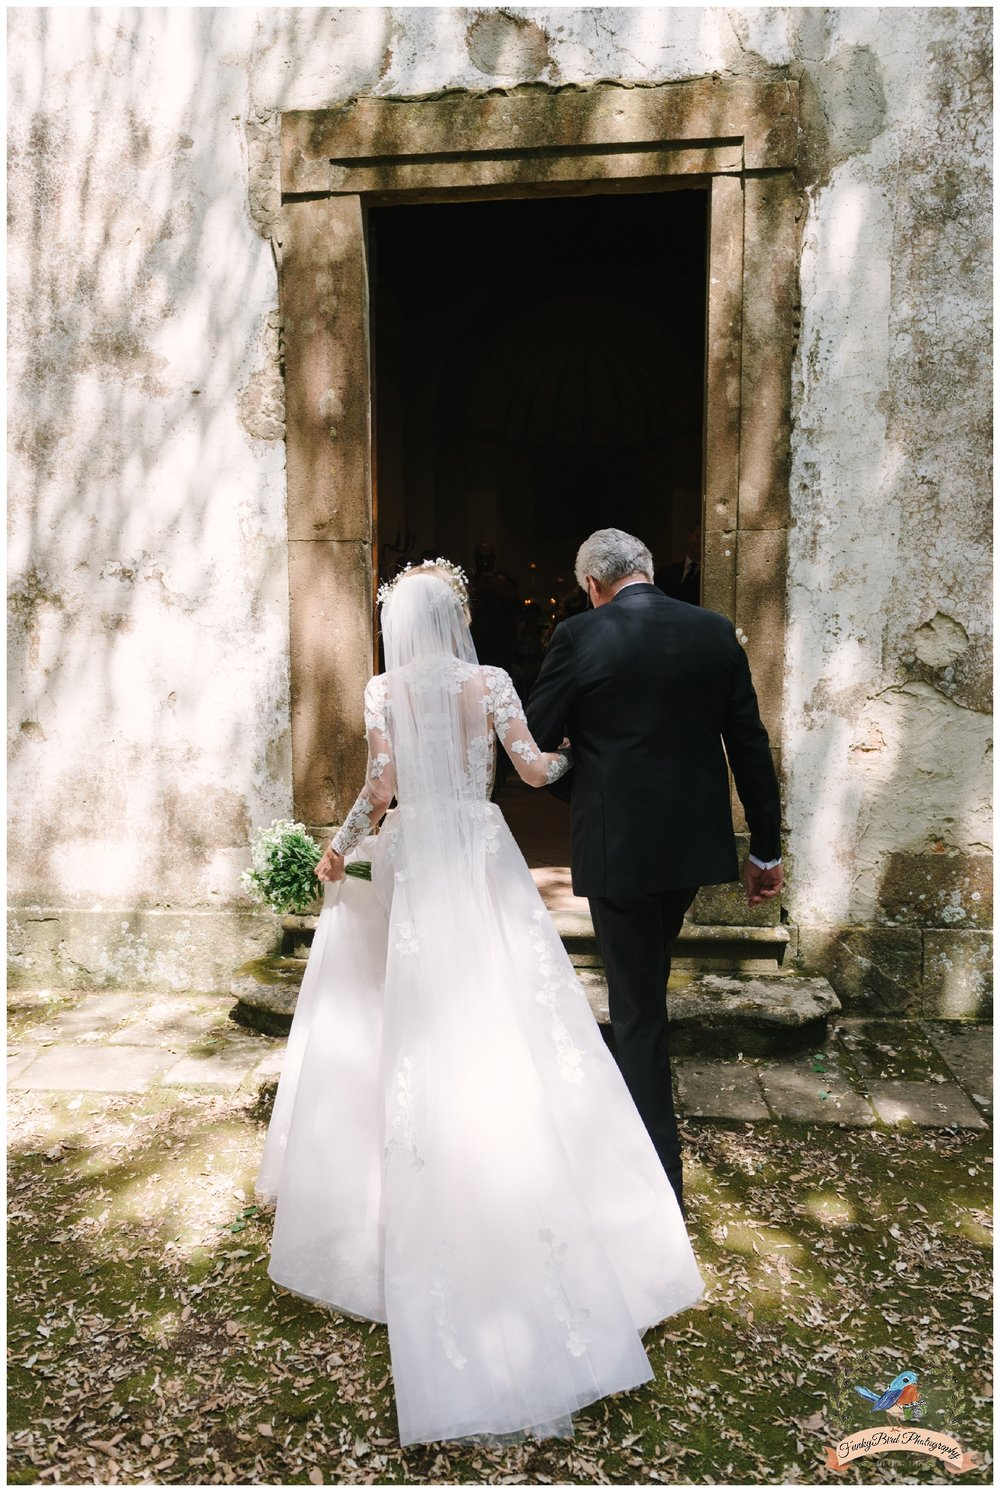 Wedding_Photographer_Tuscany_Bryllupsfotograf_0027.jpg